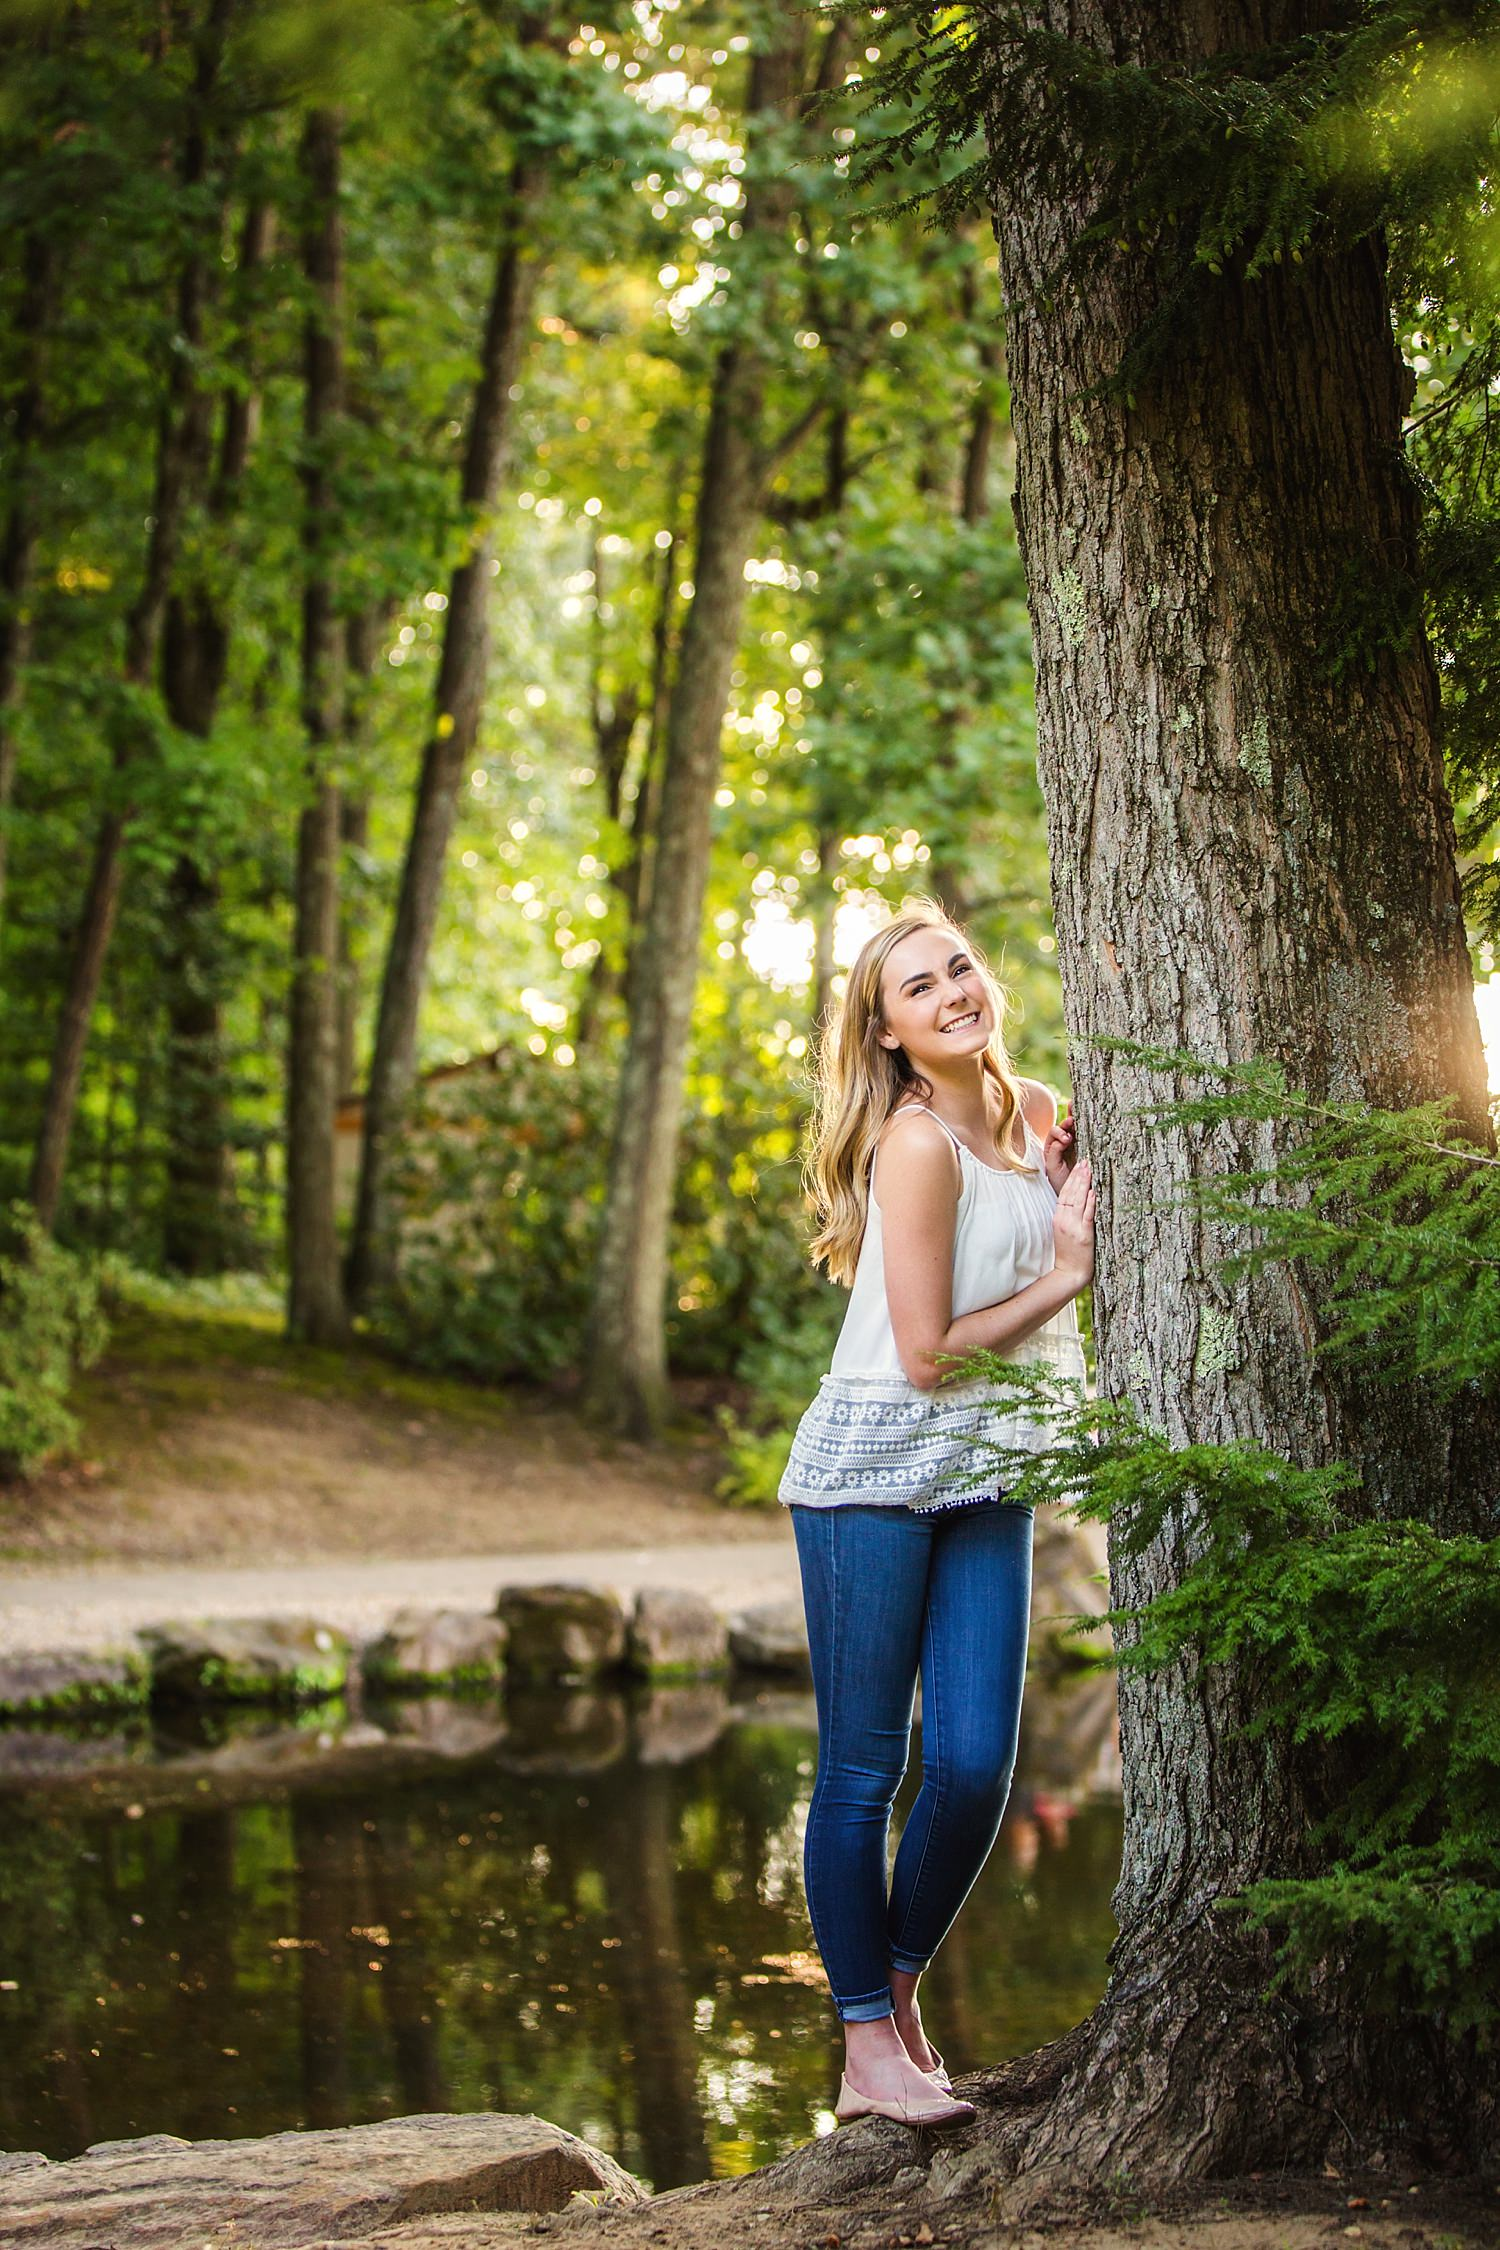 outdoor natural light High school senior portraits dawes arboretum newark ohio